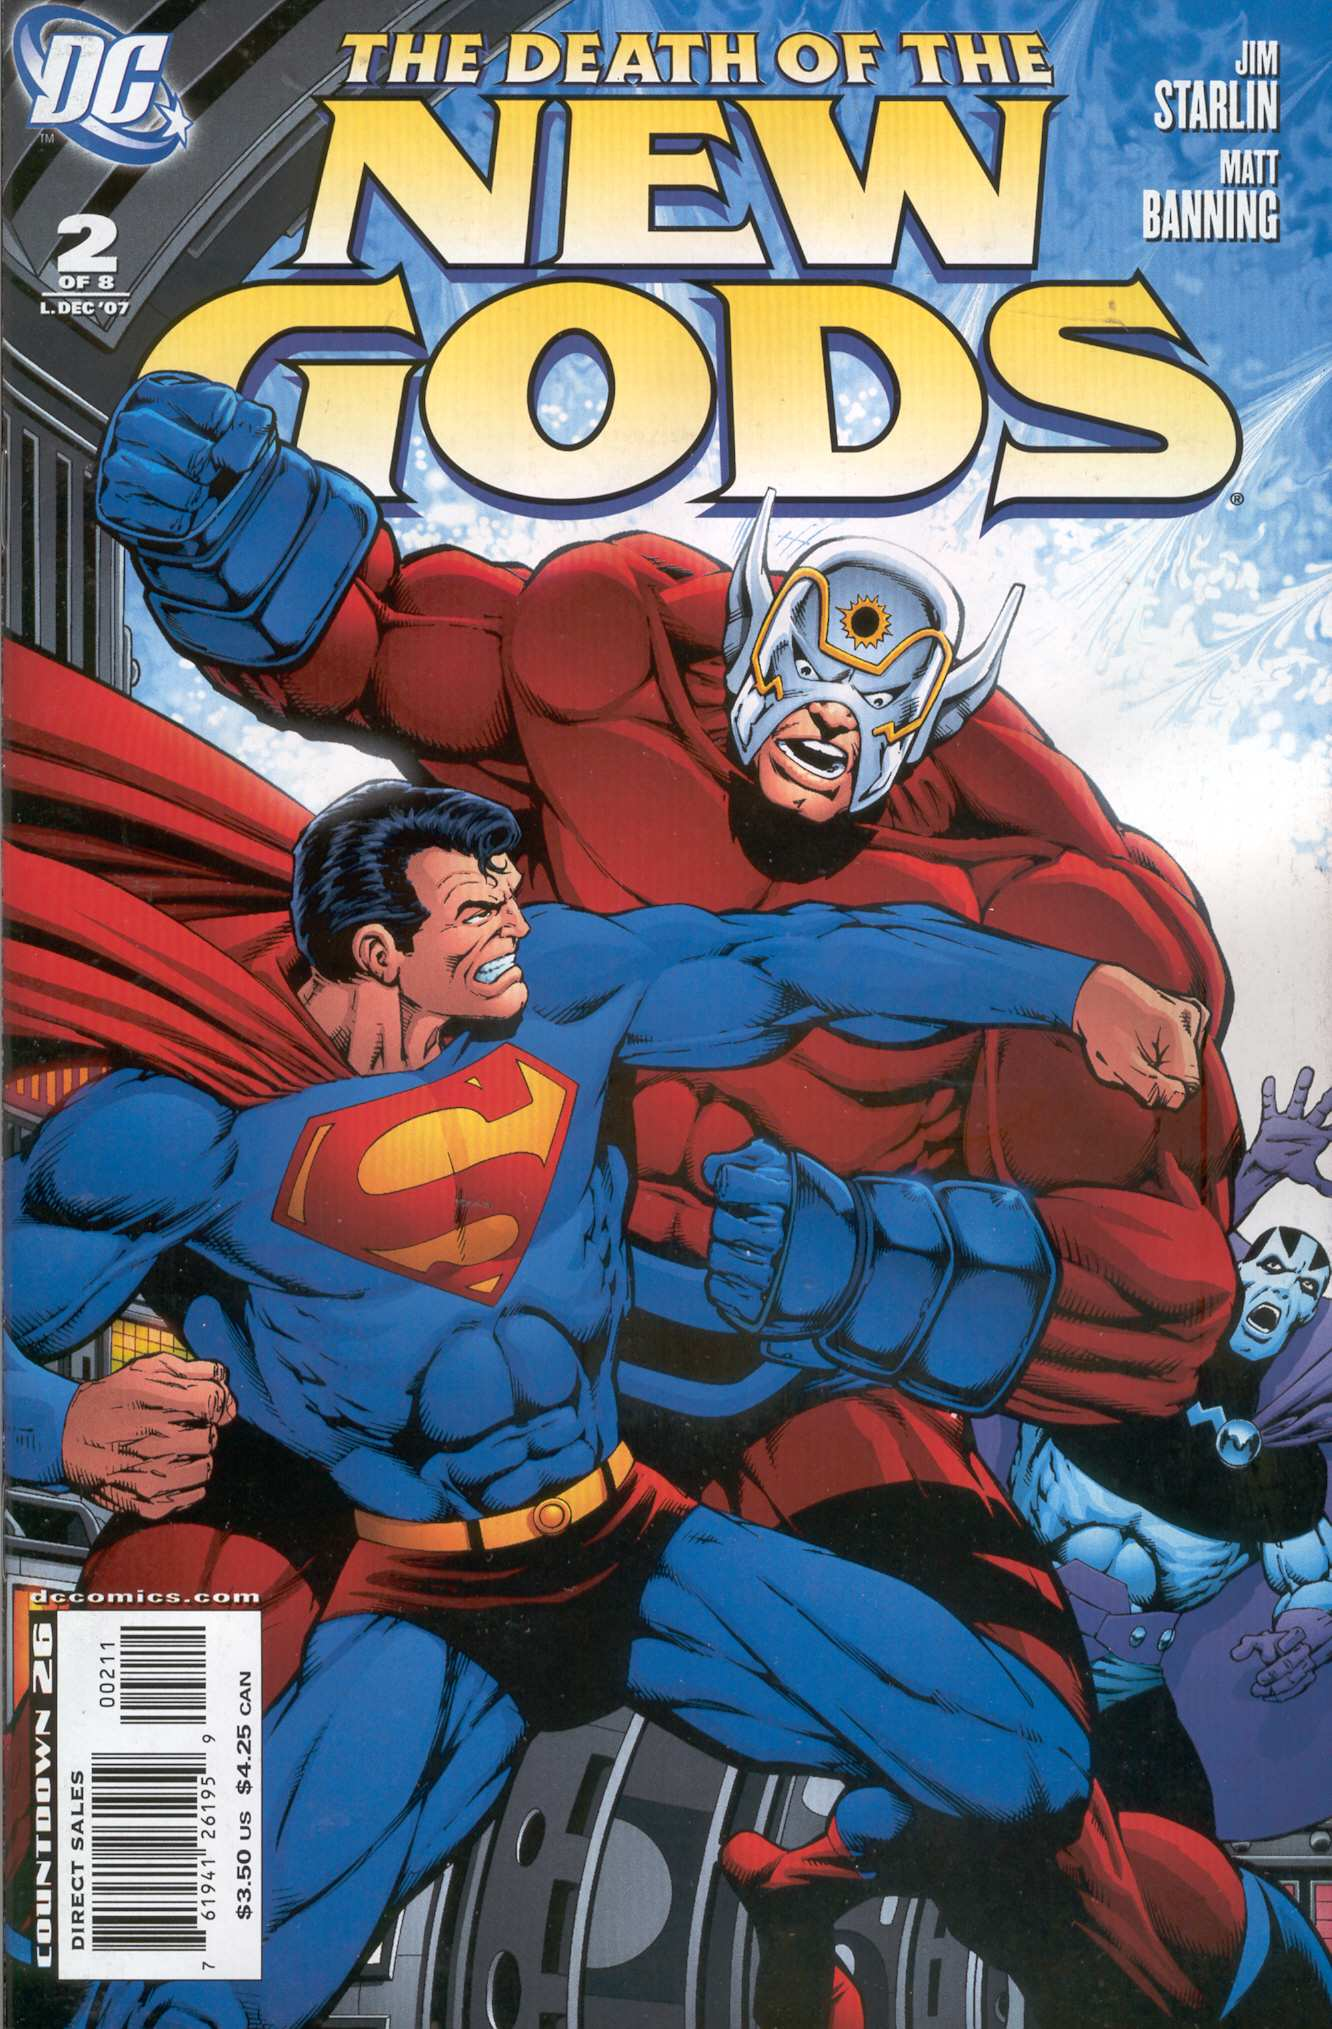 THE DEATH OF THE NEW GODS #2